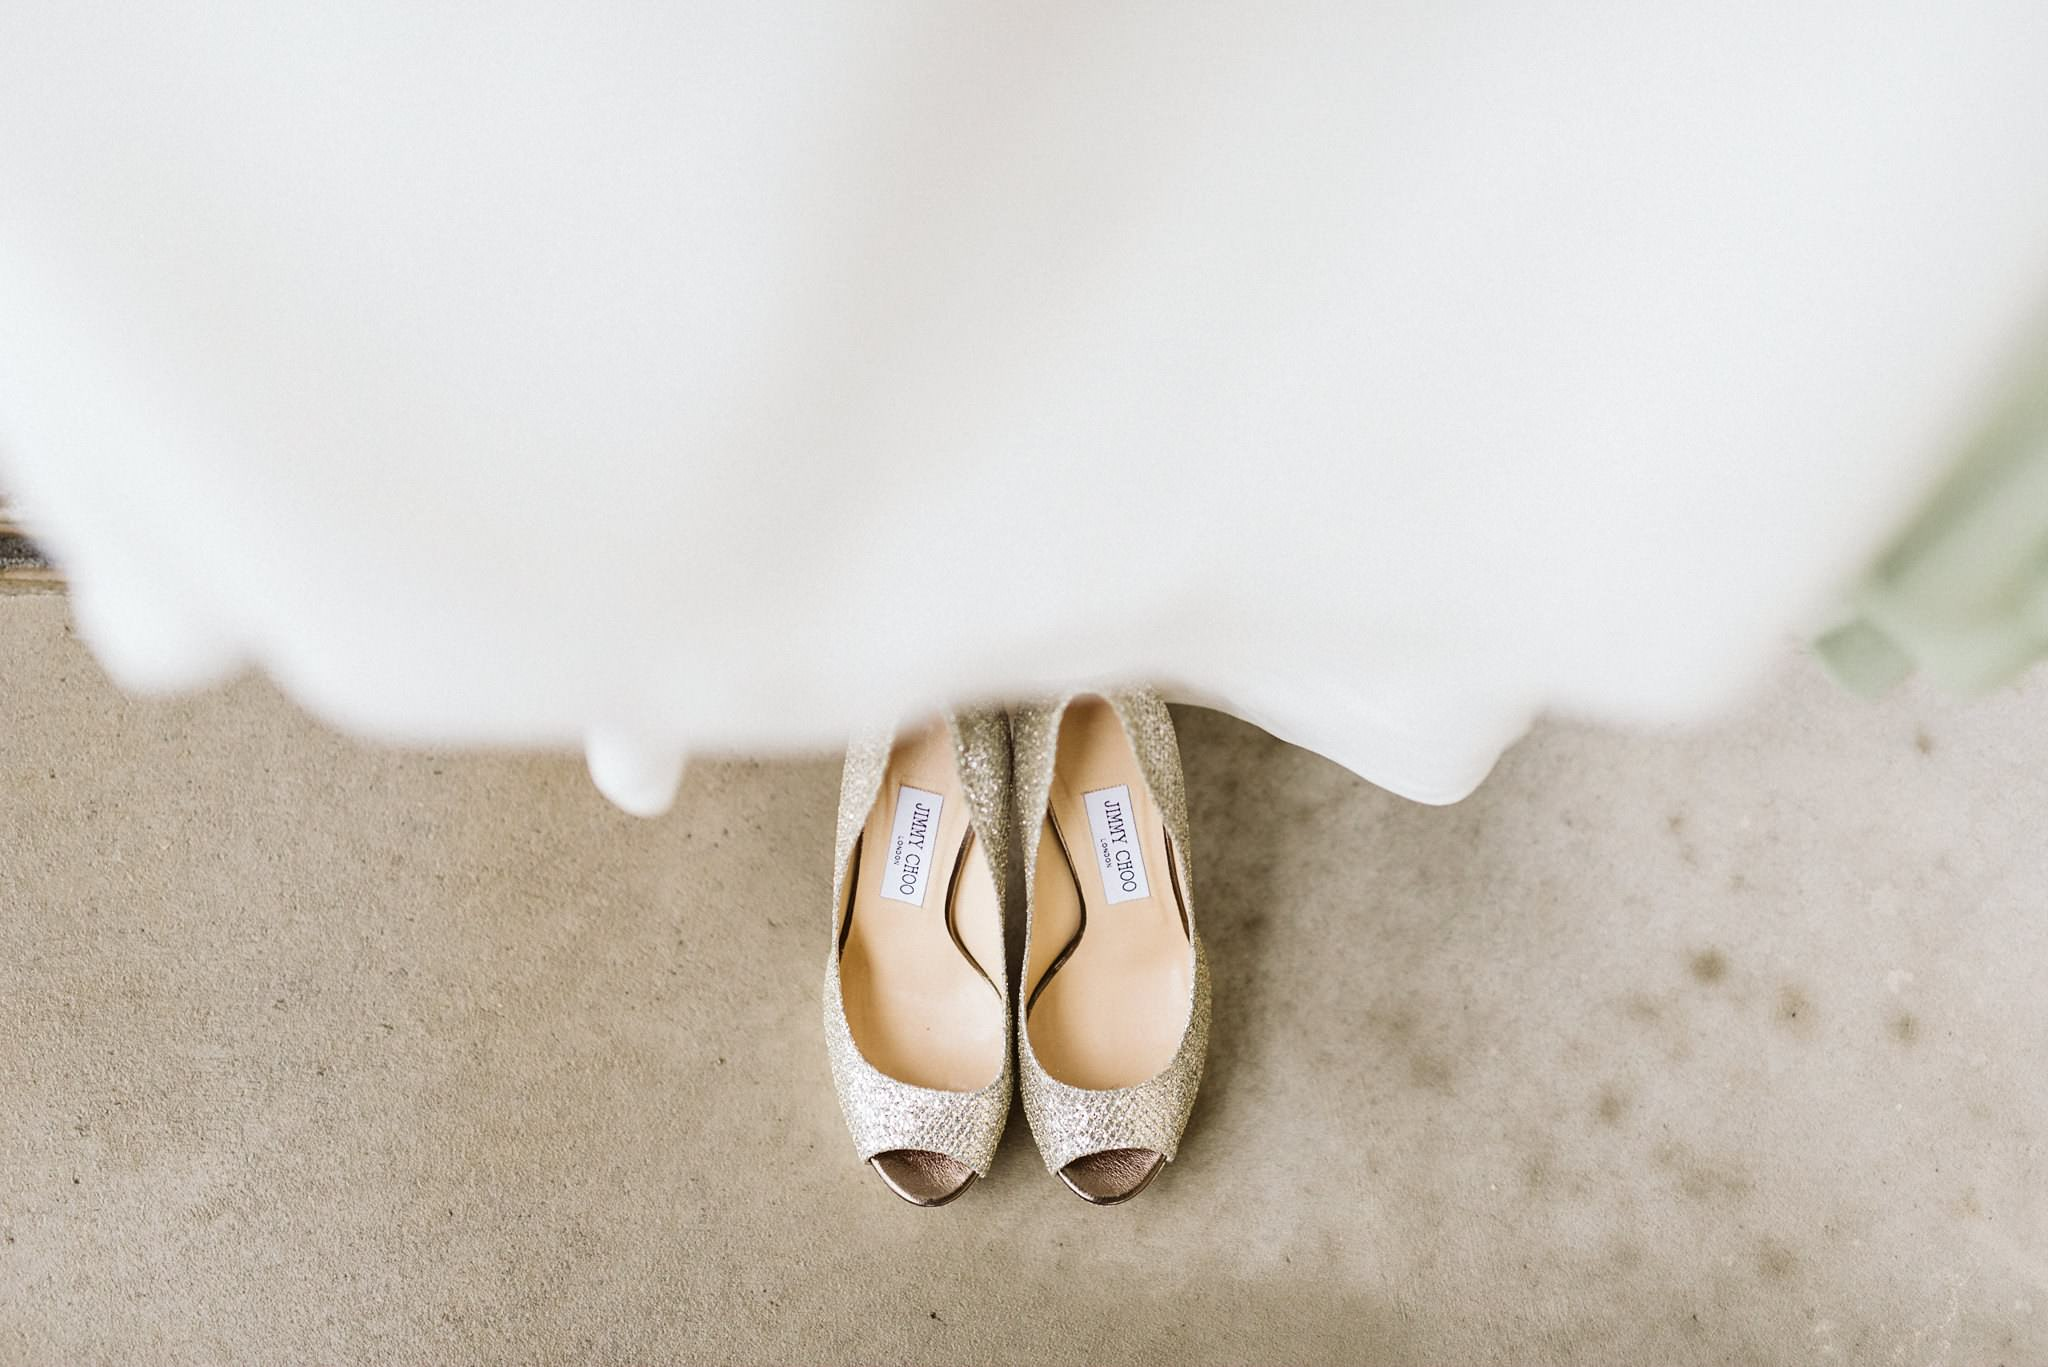 Austrian Wedding Jimmy Choo Shoes